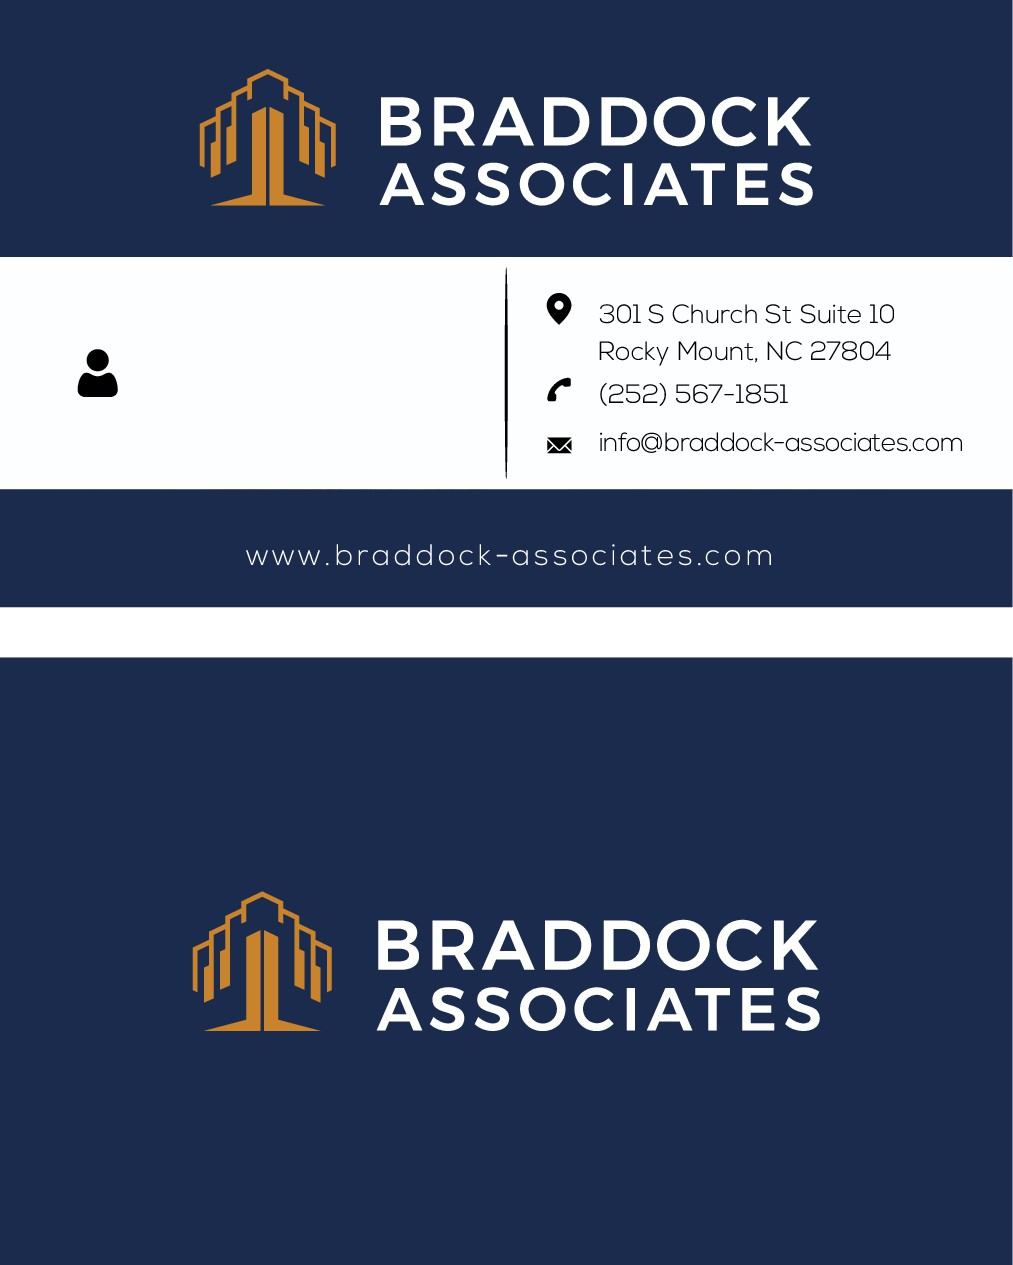 Business Cards and Social Media